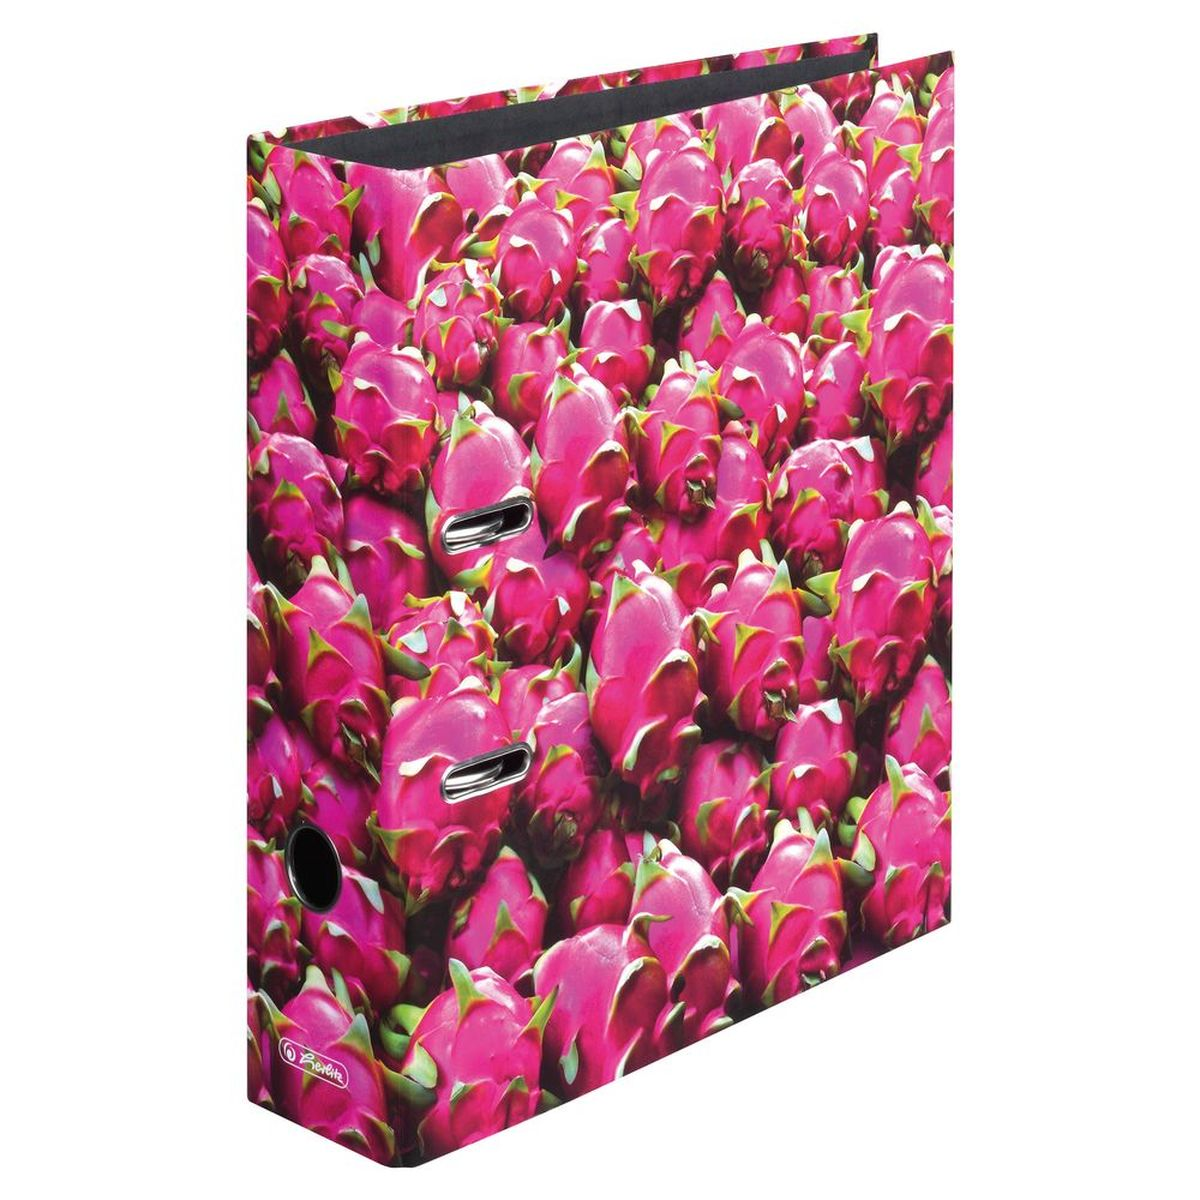 Herlitz Папка-регистратор MaX.file Dragon Fruit